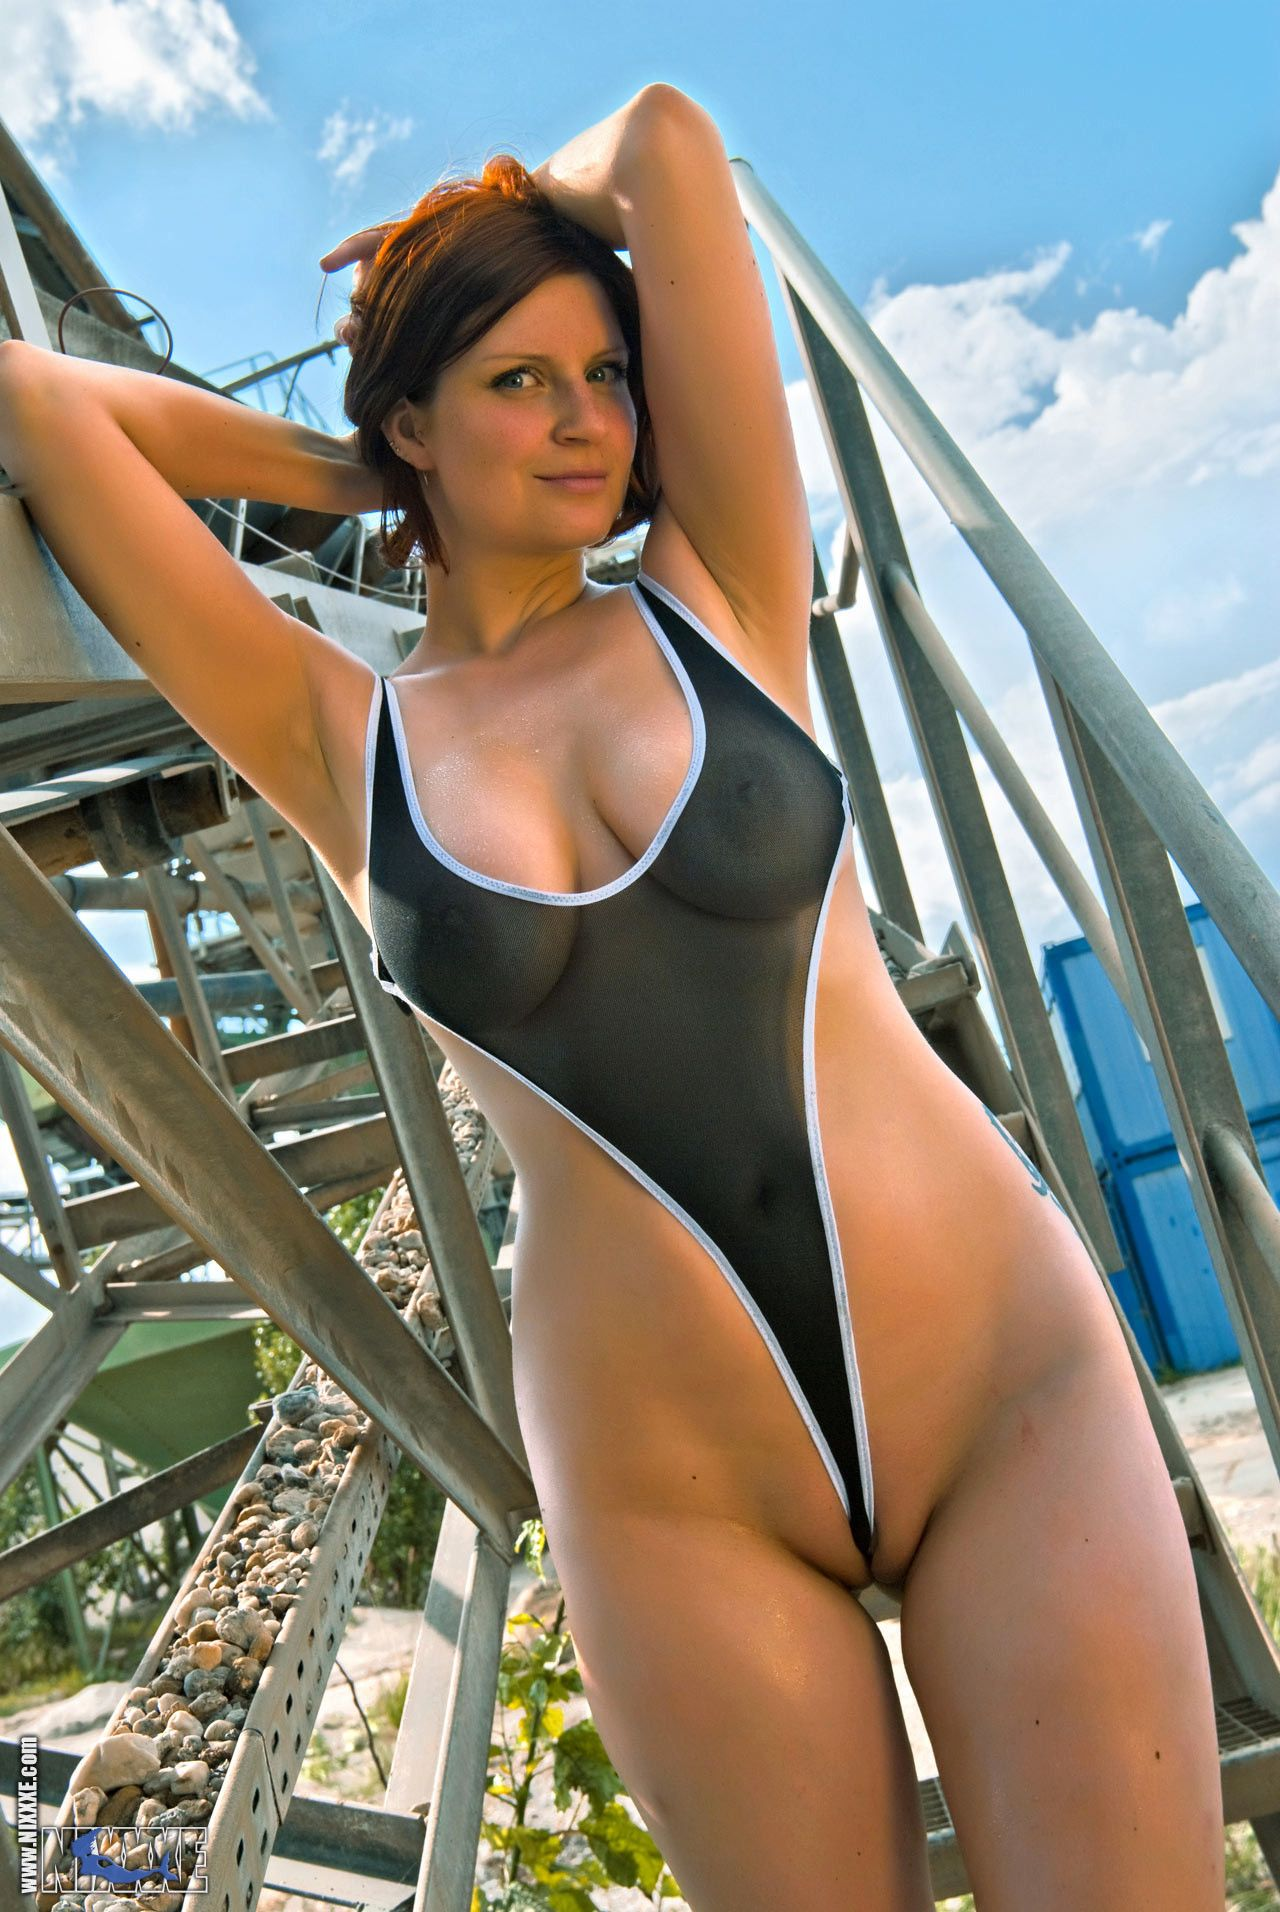 Suggest you Hot women in revealing bikinis consider